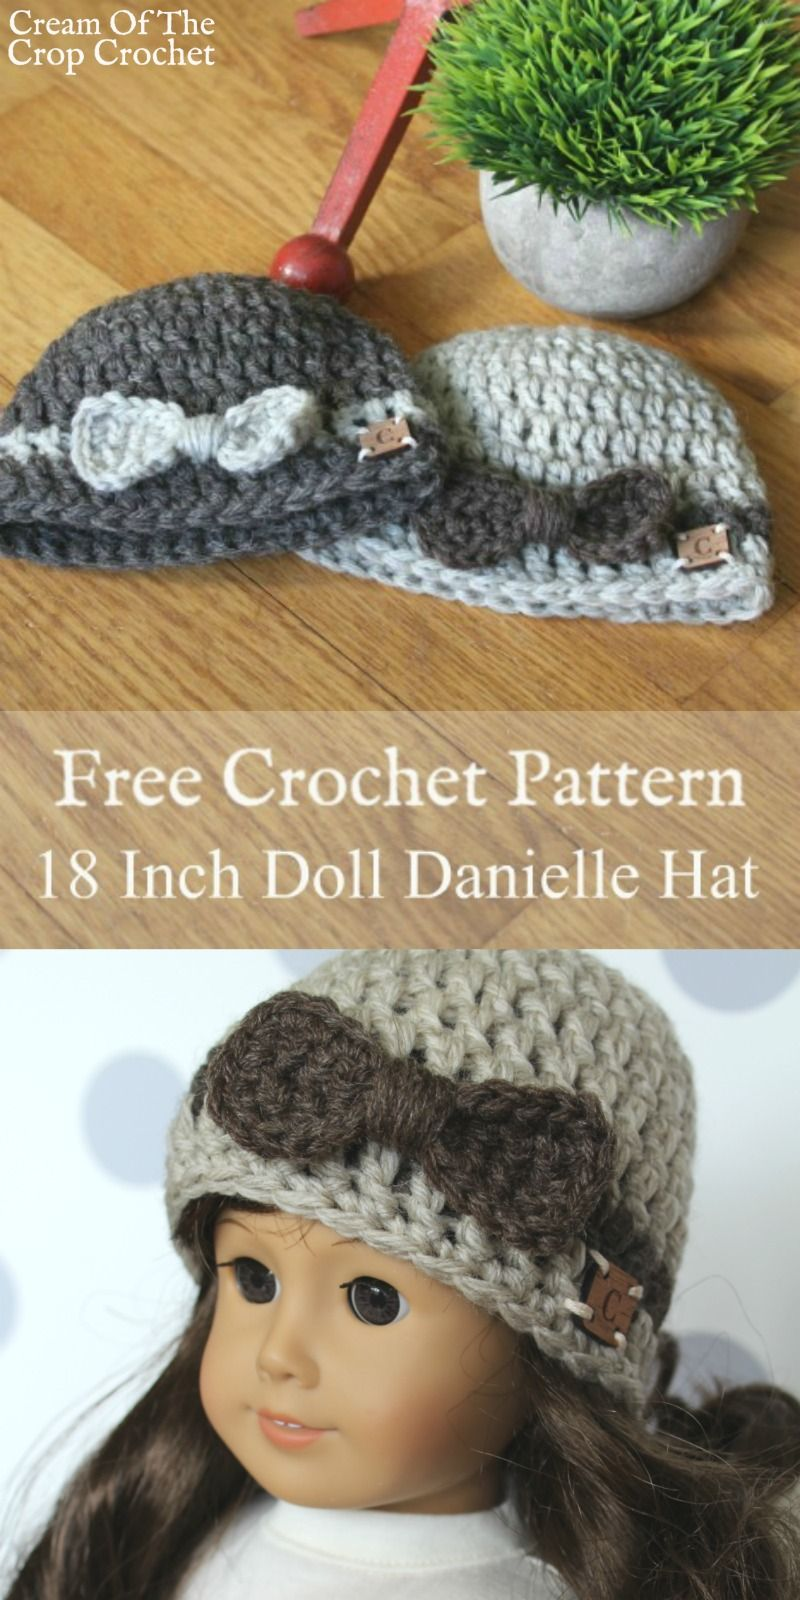 18 Inch Doll Danielle Hat Crochet Pattern | Cream Of The Crop Crochet #dollhats